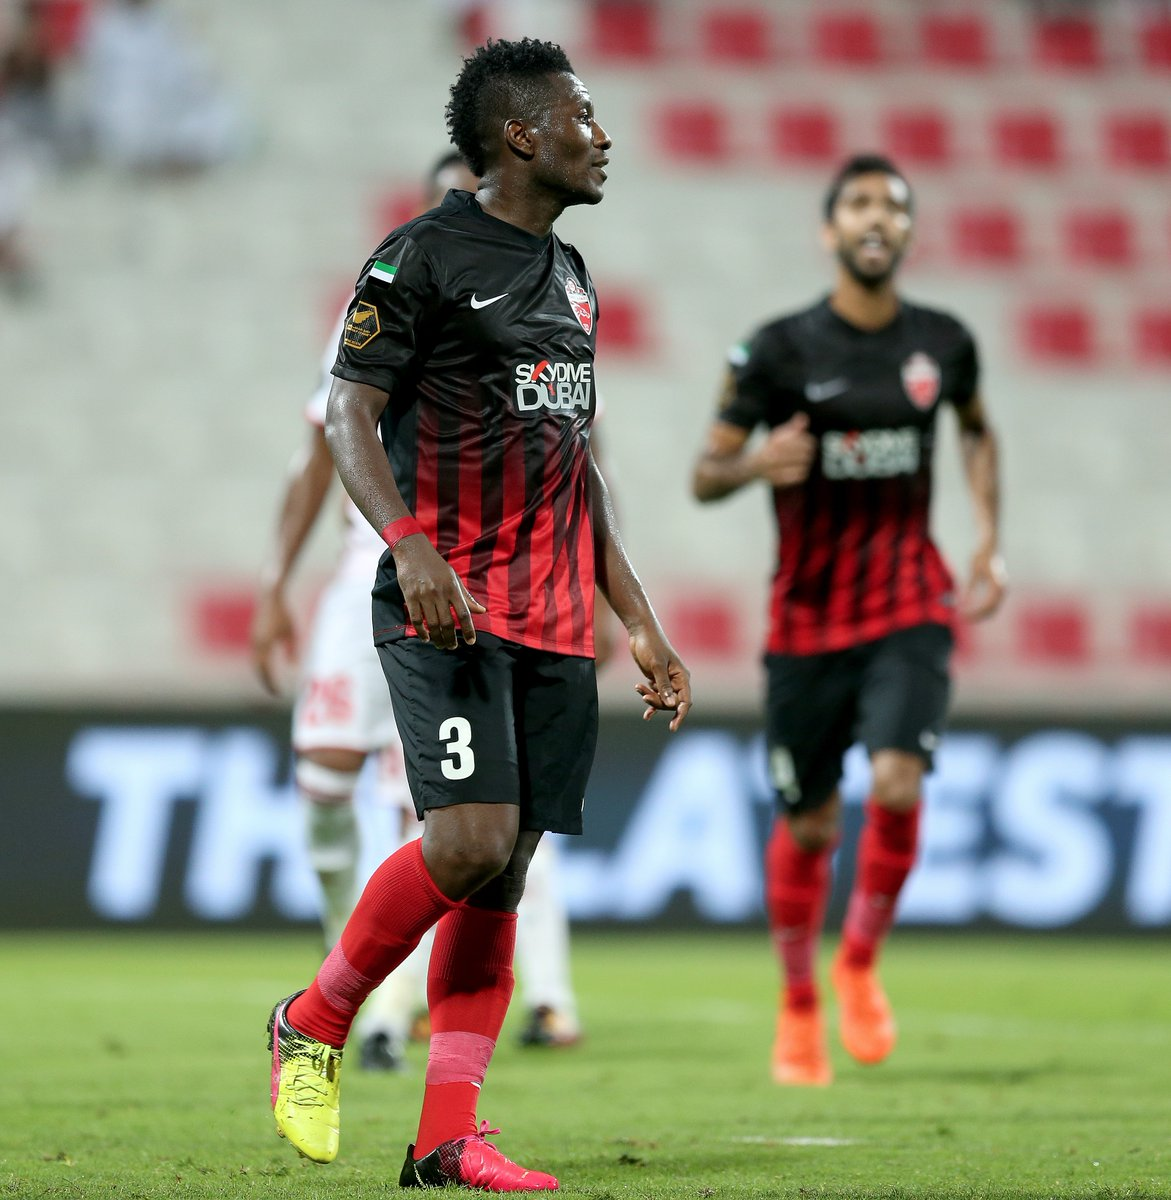 'Under-performed' Asamoah Gyan fails to make shortlists for Arabian Gulf League awards